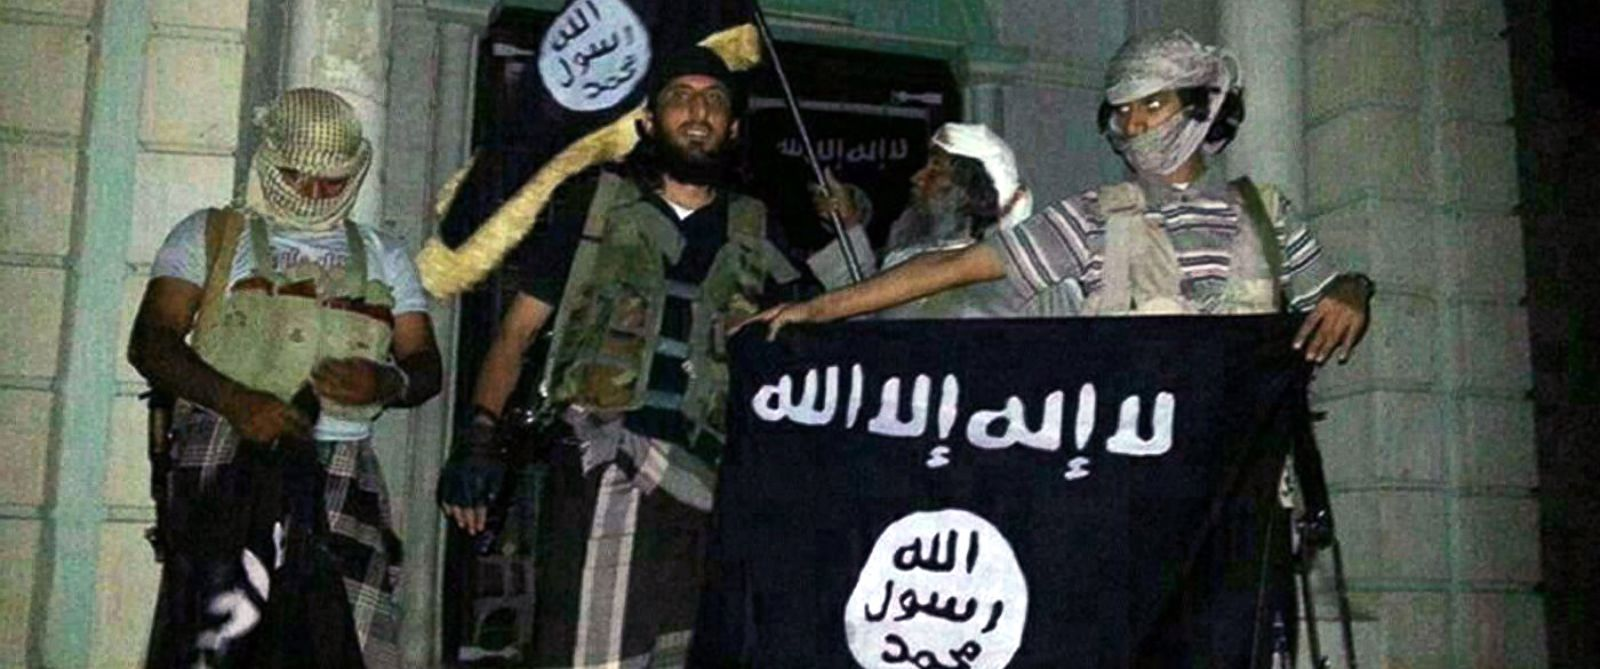 PHOTO: A picture taken with a mobile phone early on May 24, 2014 shows Al-Qaeda militants posing with Al-Qaeda flags in front of a museum in Seiyun, second Yemeni city of Hadramawt province.